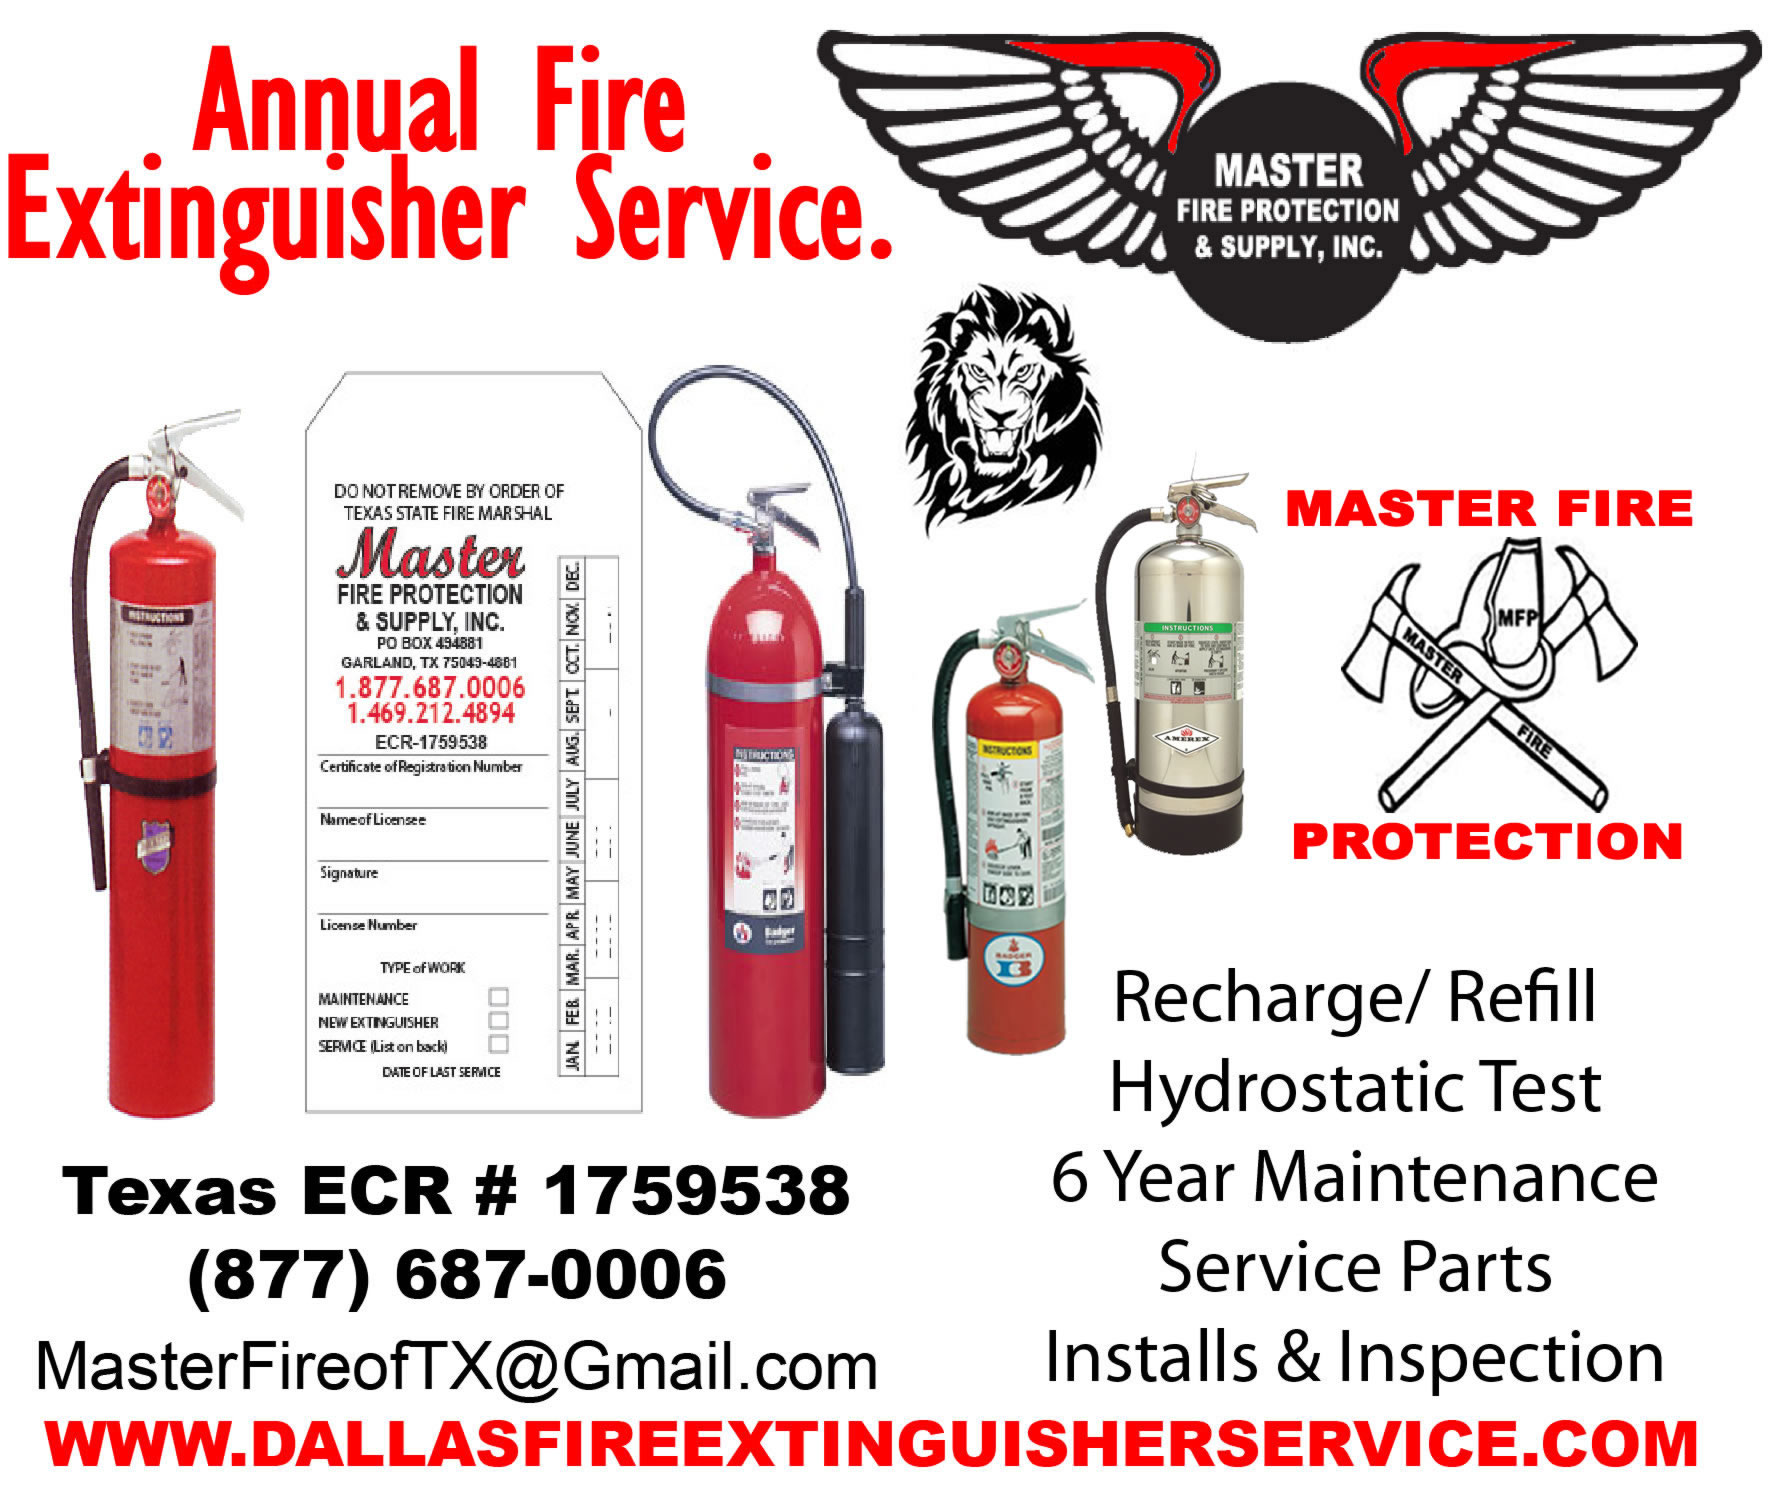 Dallas Fire Extinguisher Service Fire Extinguisher Inspection 469